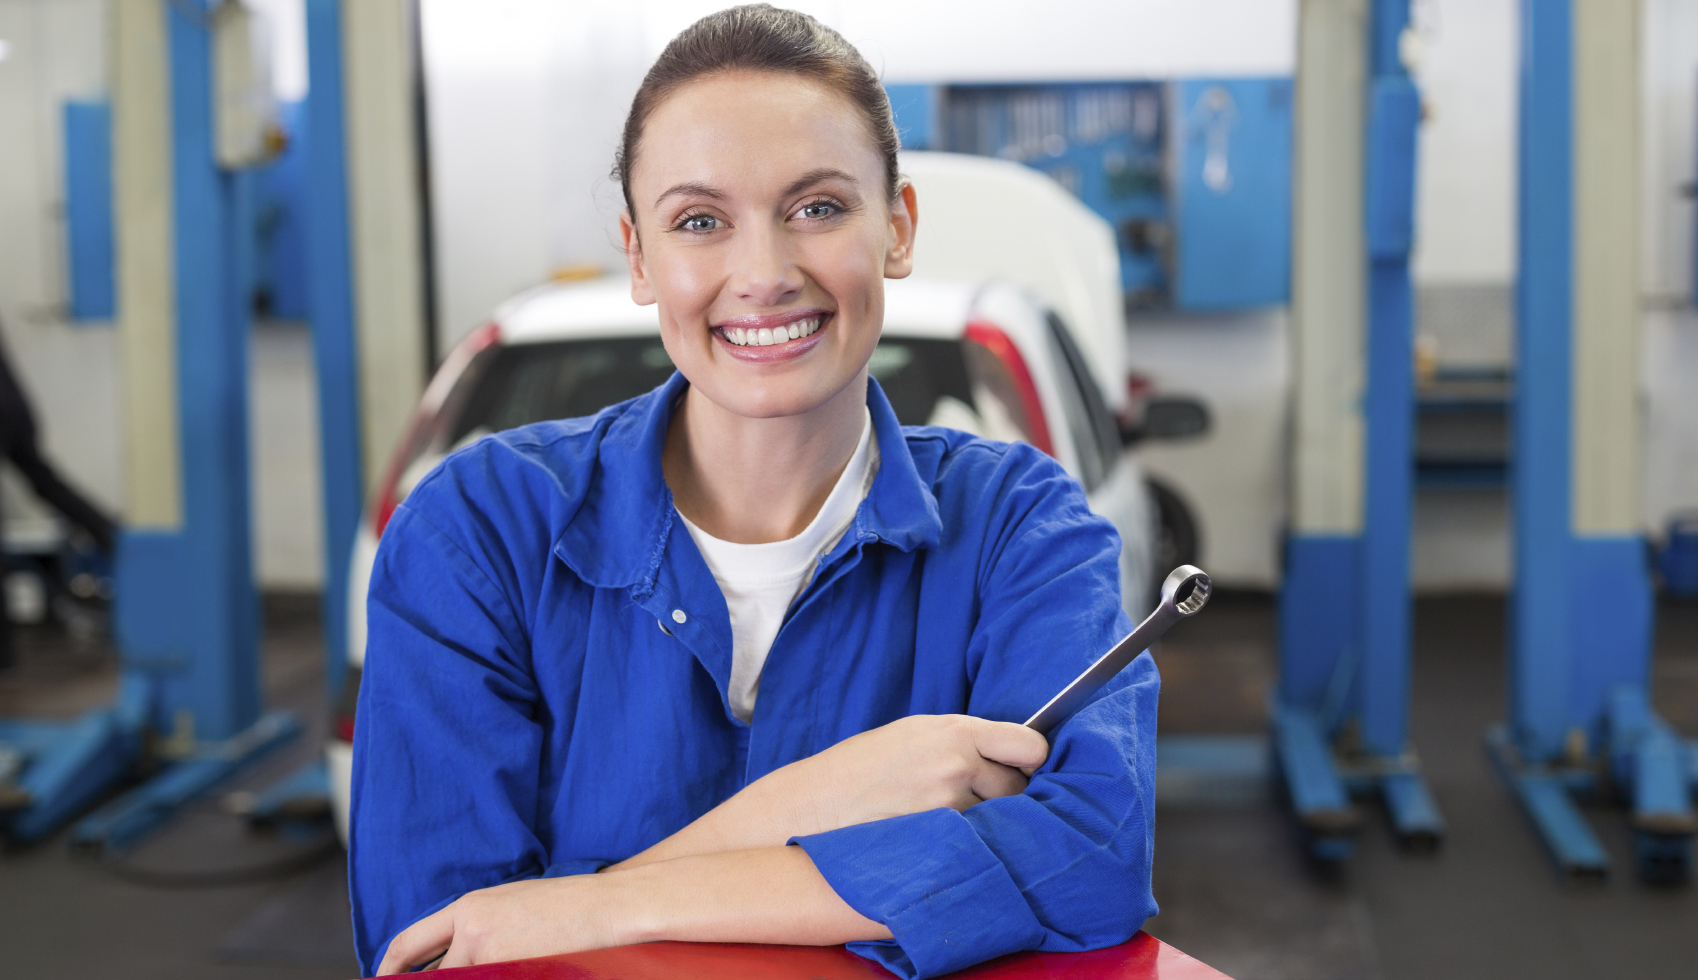 Oil Change Service near Smyrna, DE